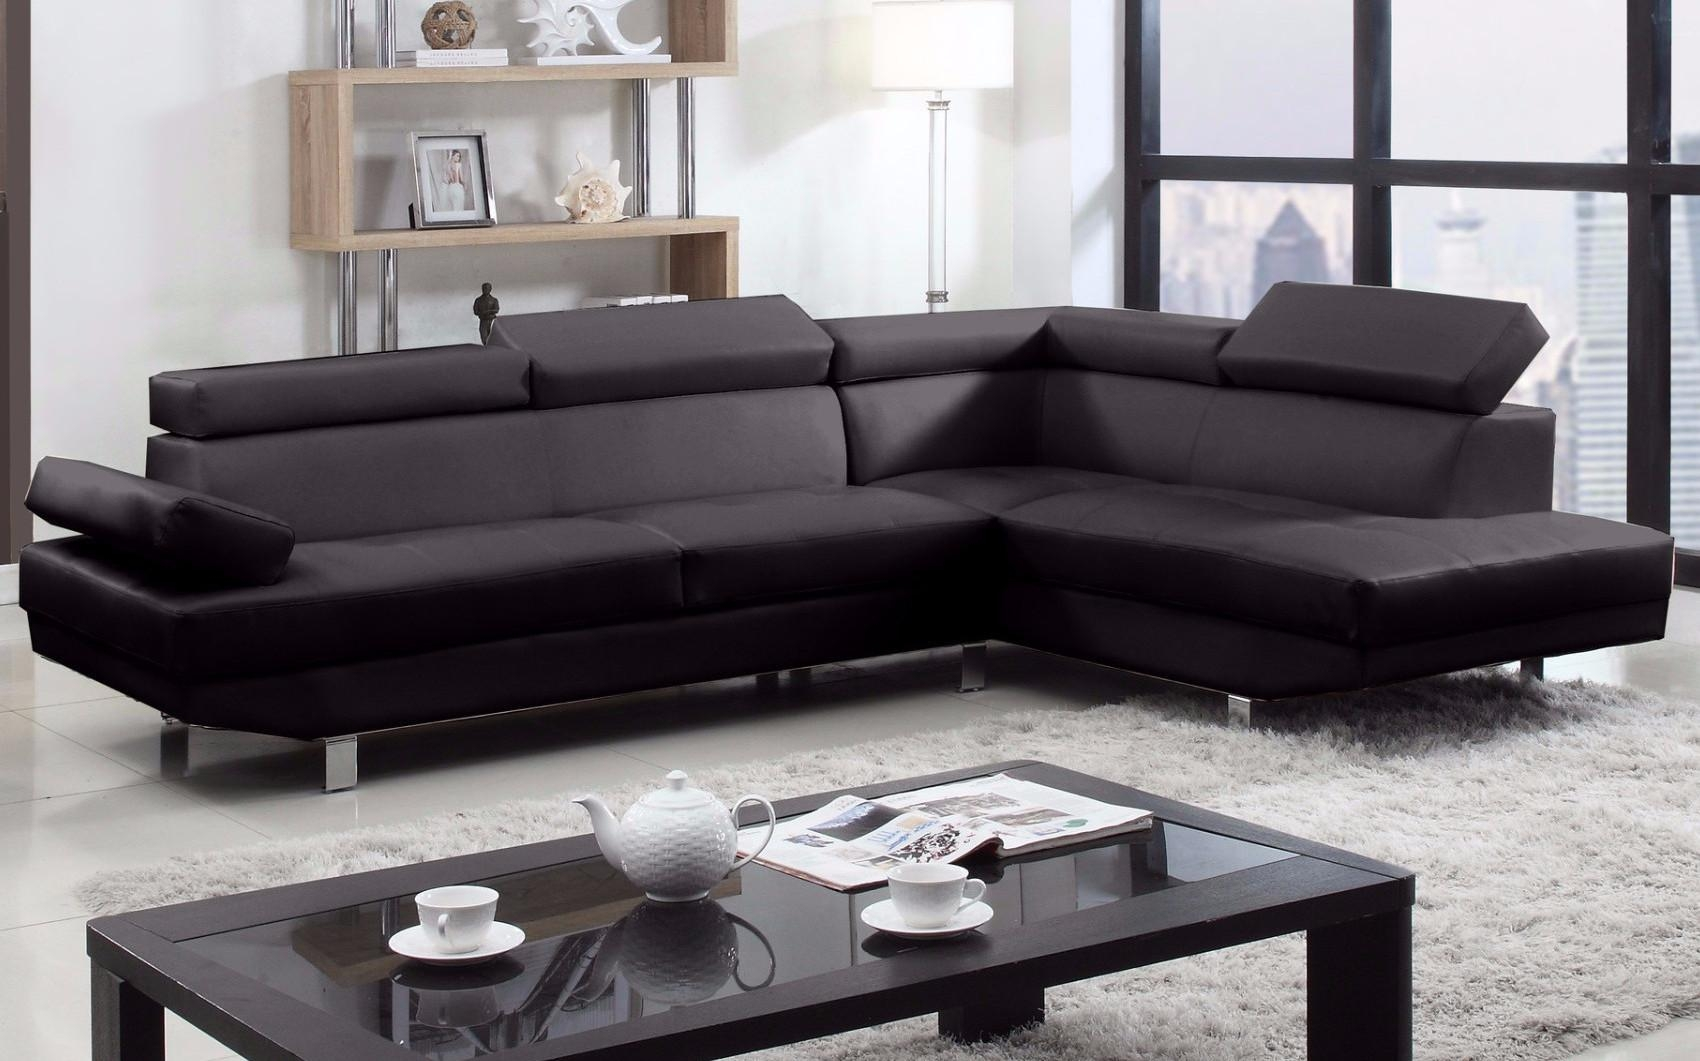 2 Piece Modern Bonded Leather Right Facing Chaise Sectional Sofa within 2 Piece Sofas